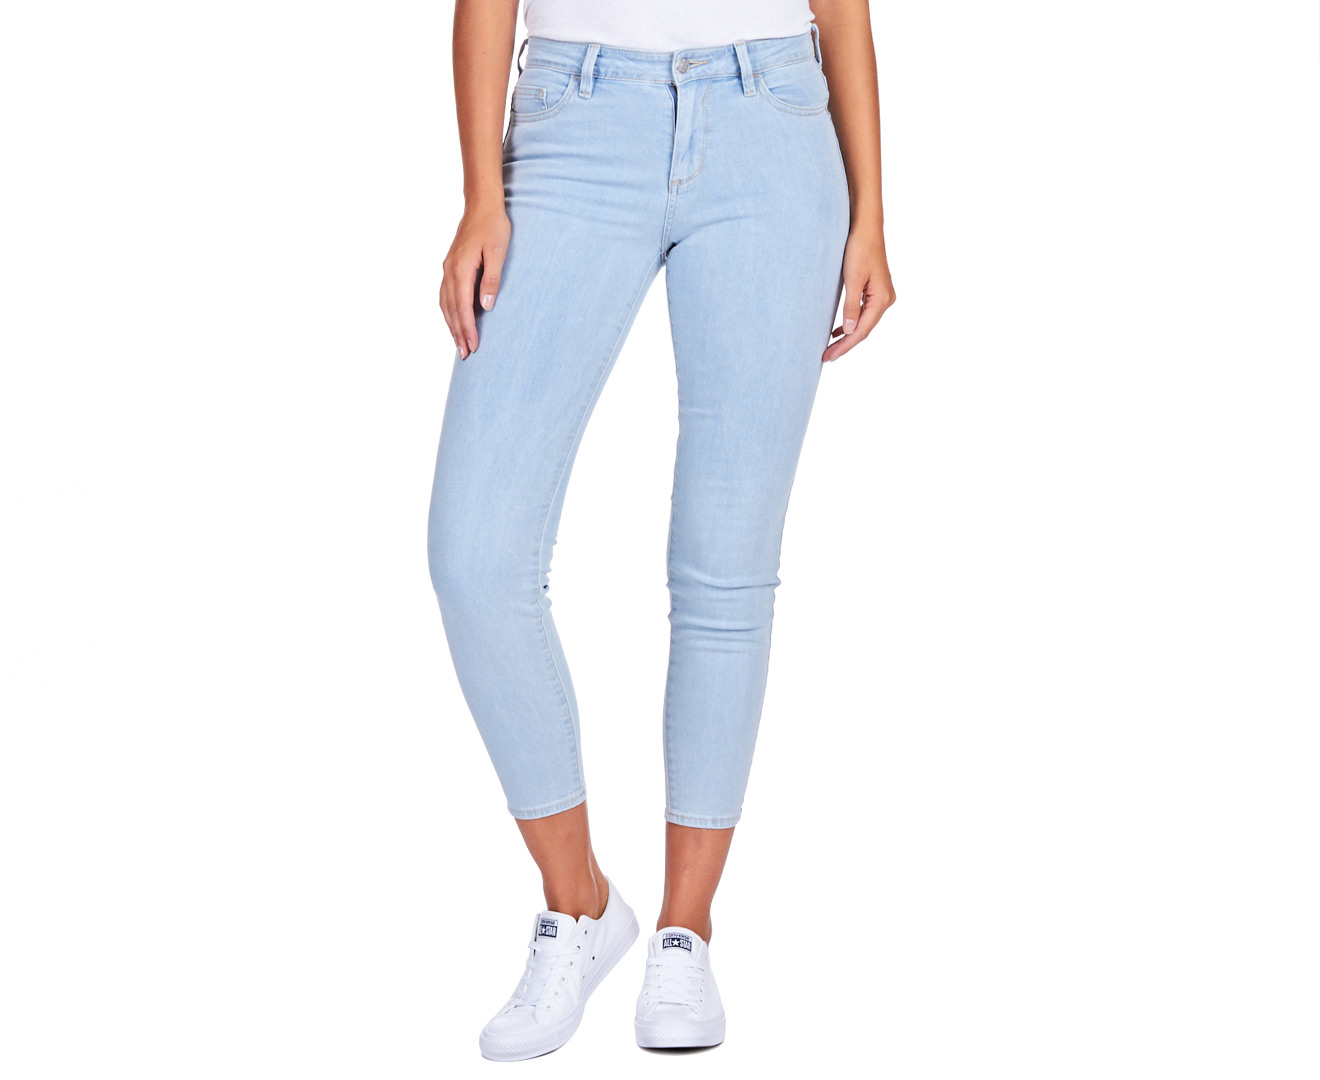 Riders by Lee Women's Mid Ankle Skimmer Jeans - Lexi Blue | eBay